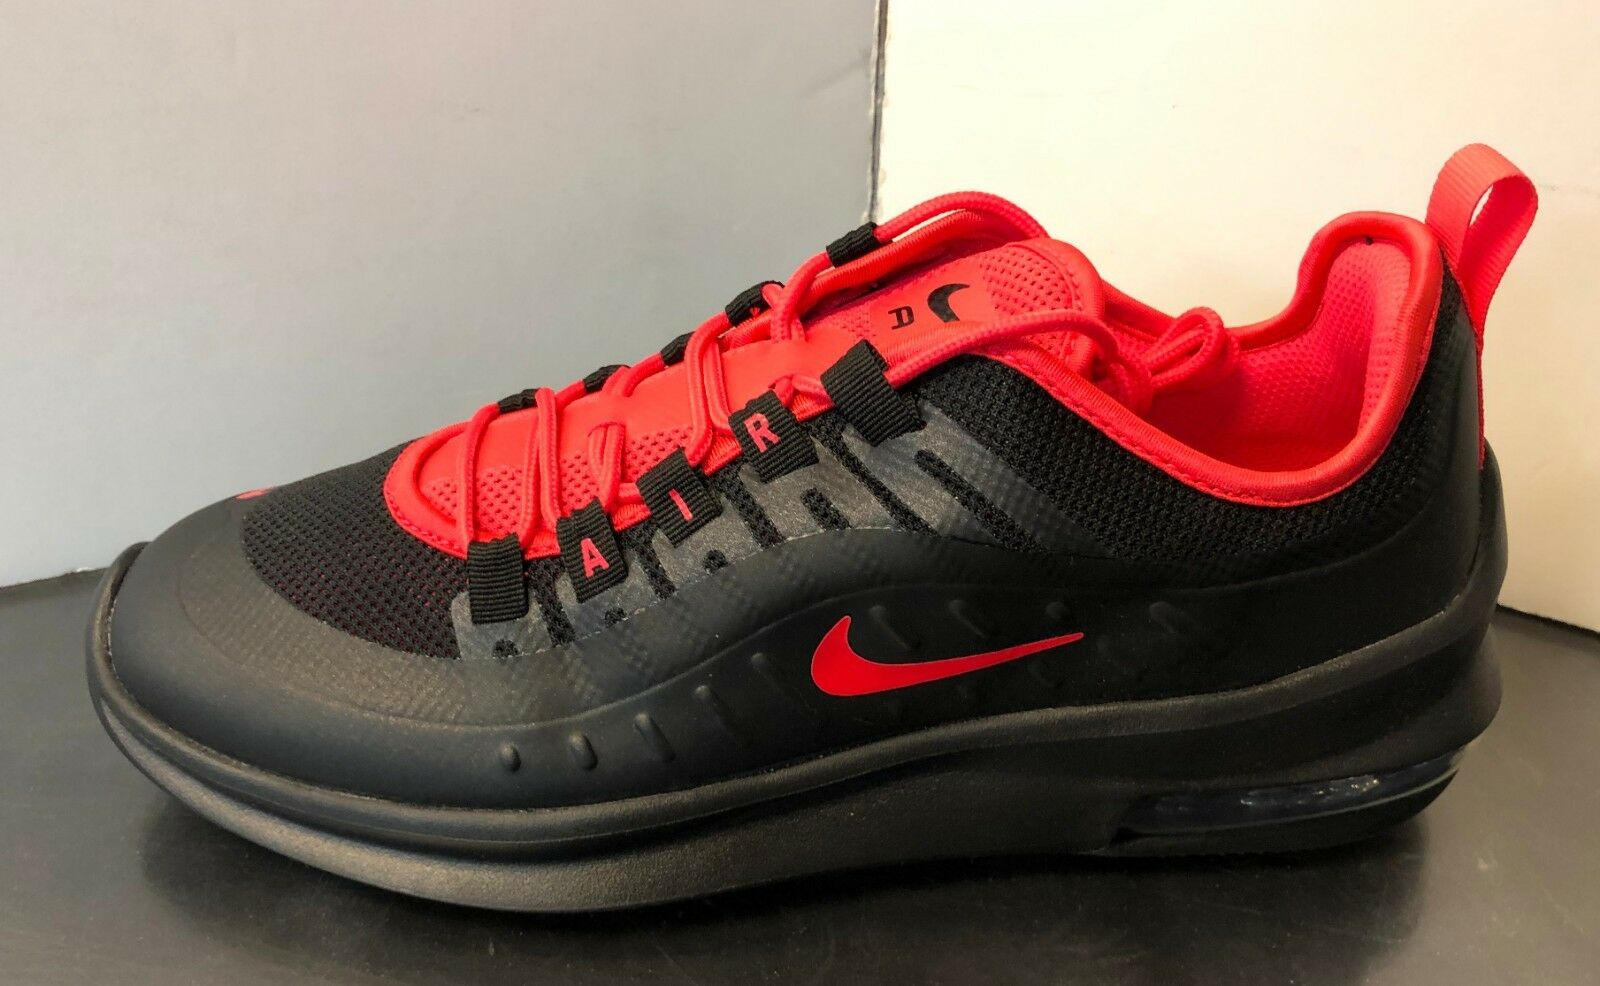 AA2146-003 Nike Air Max Axis Running shoes Black Red Sizes 8-13 NIB